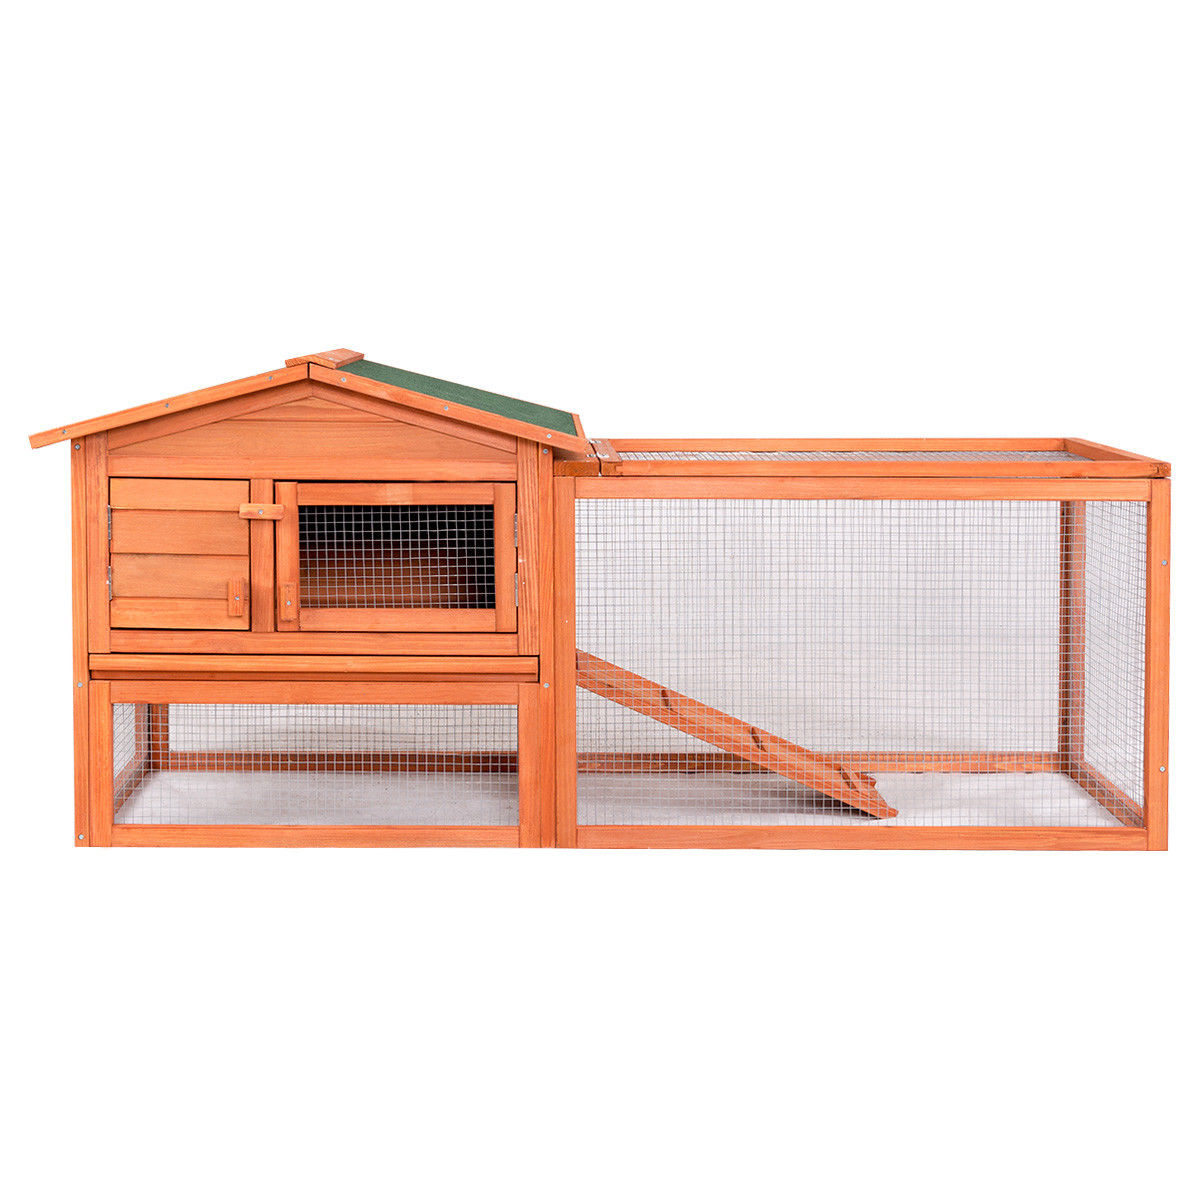 Gymax Two Story Pet Wooden House Rabbit Hutch Bunny Chicken Coop with Tray Run Outdoor by Gymax